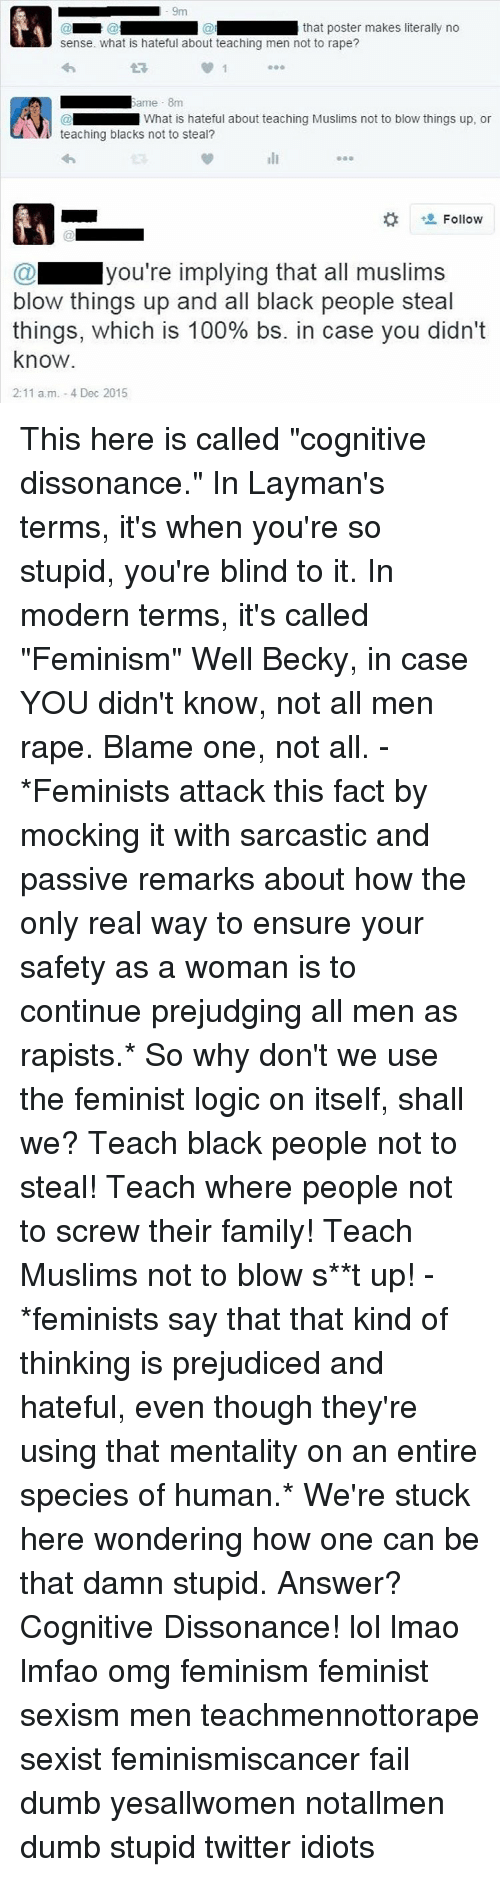 "Dumb, Fail, and Logic: @m that poster makes literally no  sense. What is hateful about teaching men not to rape?  Same 8m  What is hateful about teaching Muslims not to blow things up, or  NY teaching blacks not to steal?  Follow  you're implying that all muslims  blow things up and all black people steal  things, which is 100% bs. in case you didn't  know  2:11 a.m. -4 Dec 2015 This here is called ""cognitive dissonance."" In Layman's terms, it's when you're so stupid, you're blind to it. In modern terms, it's called ""Feminism"" Well Becky, in case YOU didn't know, not all men rape. Blame one, not all. -*Feminists attack this fact by mocking it with sarcastic and passive remarks about how the only real way to ensure your safety as a woman is to continue prejudging all men as rapists.* So why don't we use the feminist logic on itself, shall we? Teach black people not to steal! Teach where people not to screw their family! Teach Muslims not to blow s**t up! -*feminists say that that kind of thinking is prejudiced and hateful, even though they're using that mentality on an entire species of human.* We're stuck here wondering how one can be that damn stupid. Answer? Cognitive Dissonance! lol lmao lmfao omg feminism feminist sexism men teachmennottorape sexist feminismiscancer fail dumb yesallwomen notallmen dumb stupid twitter idiots"